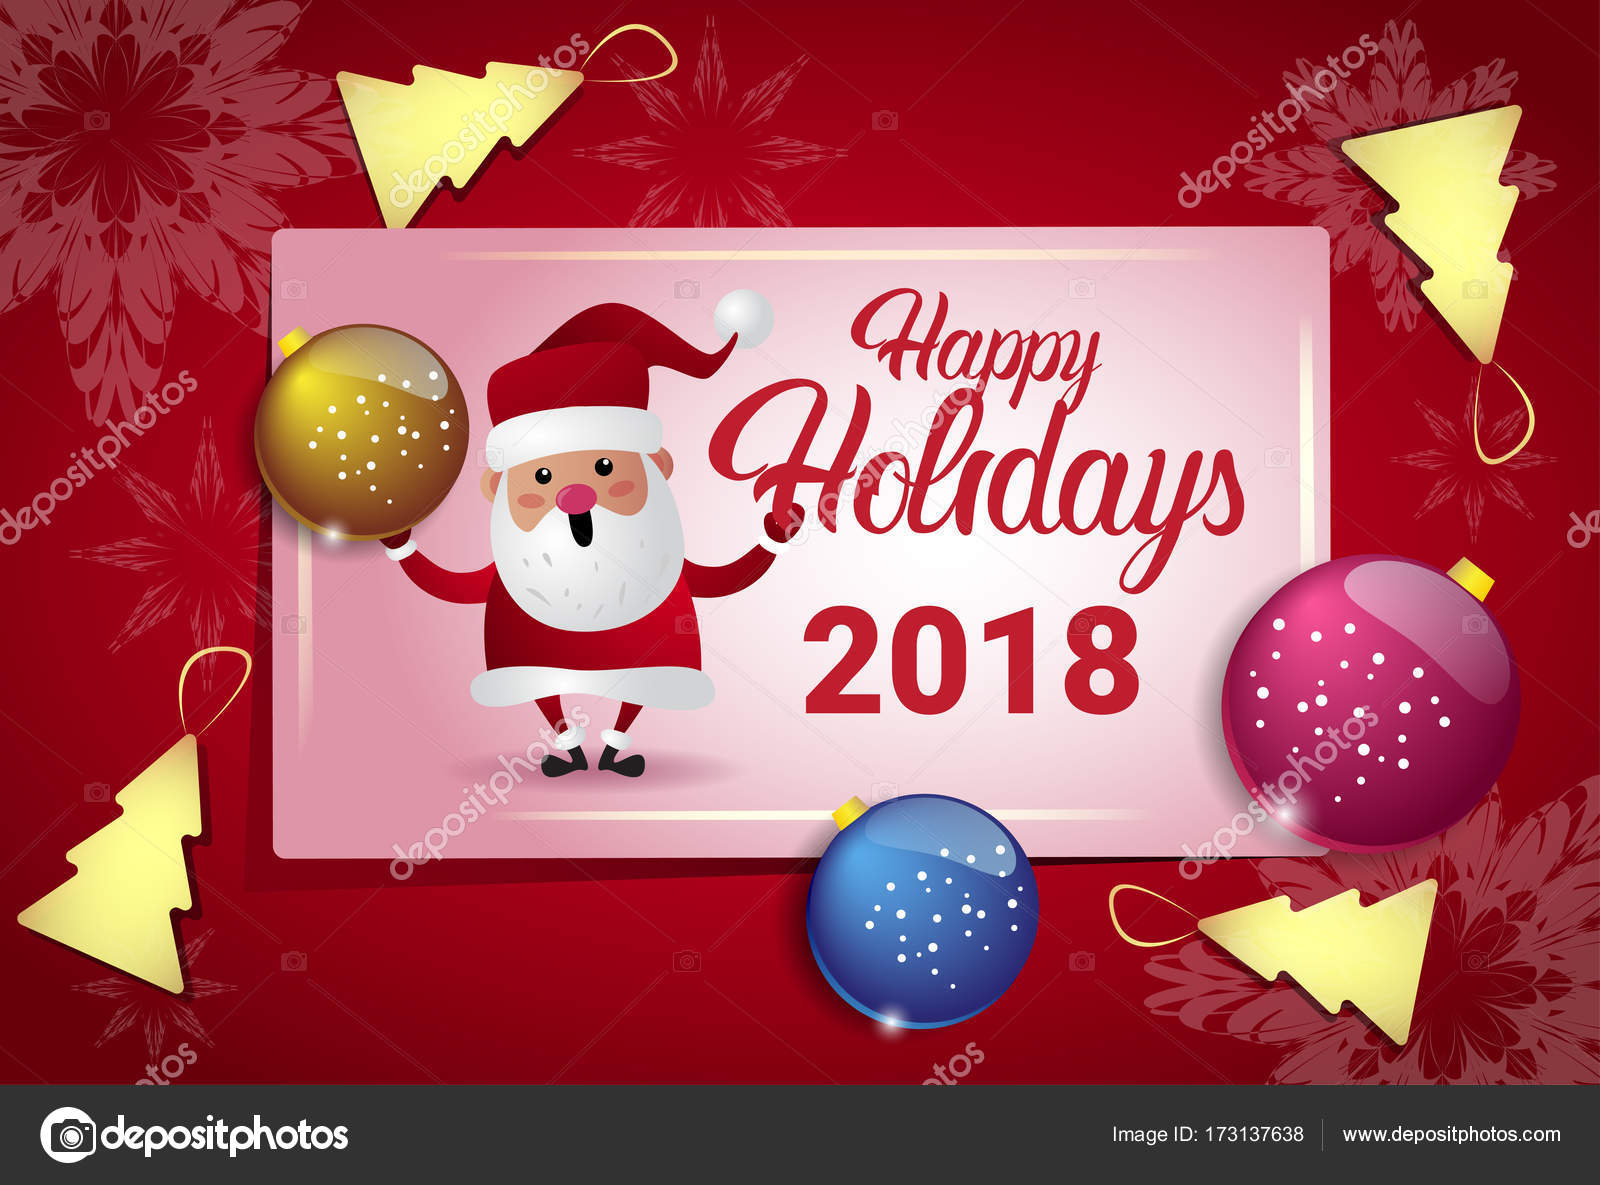 happy holidays 2018 poster wth santa and christmas tree balls new year card concept stock